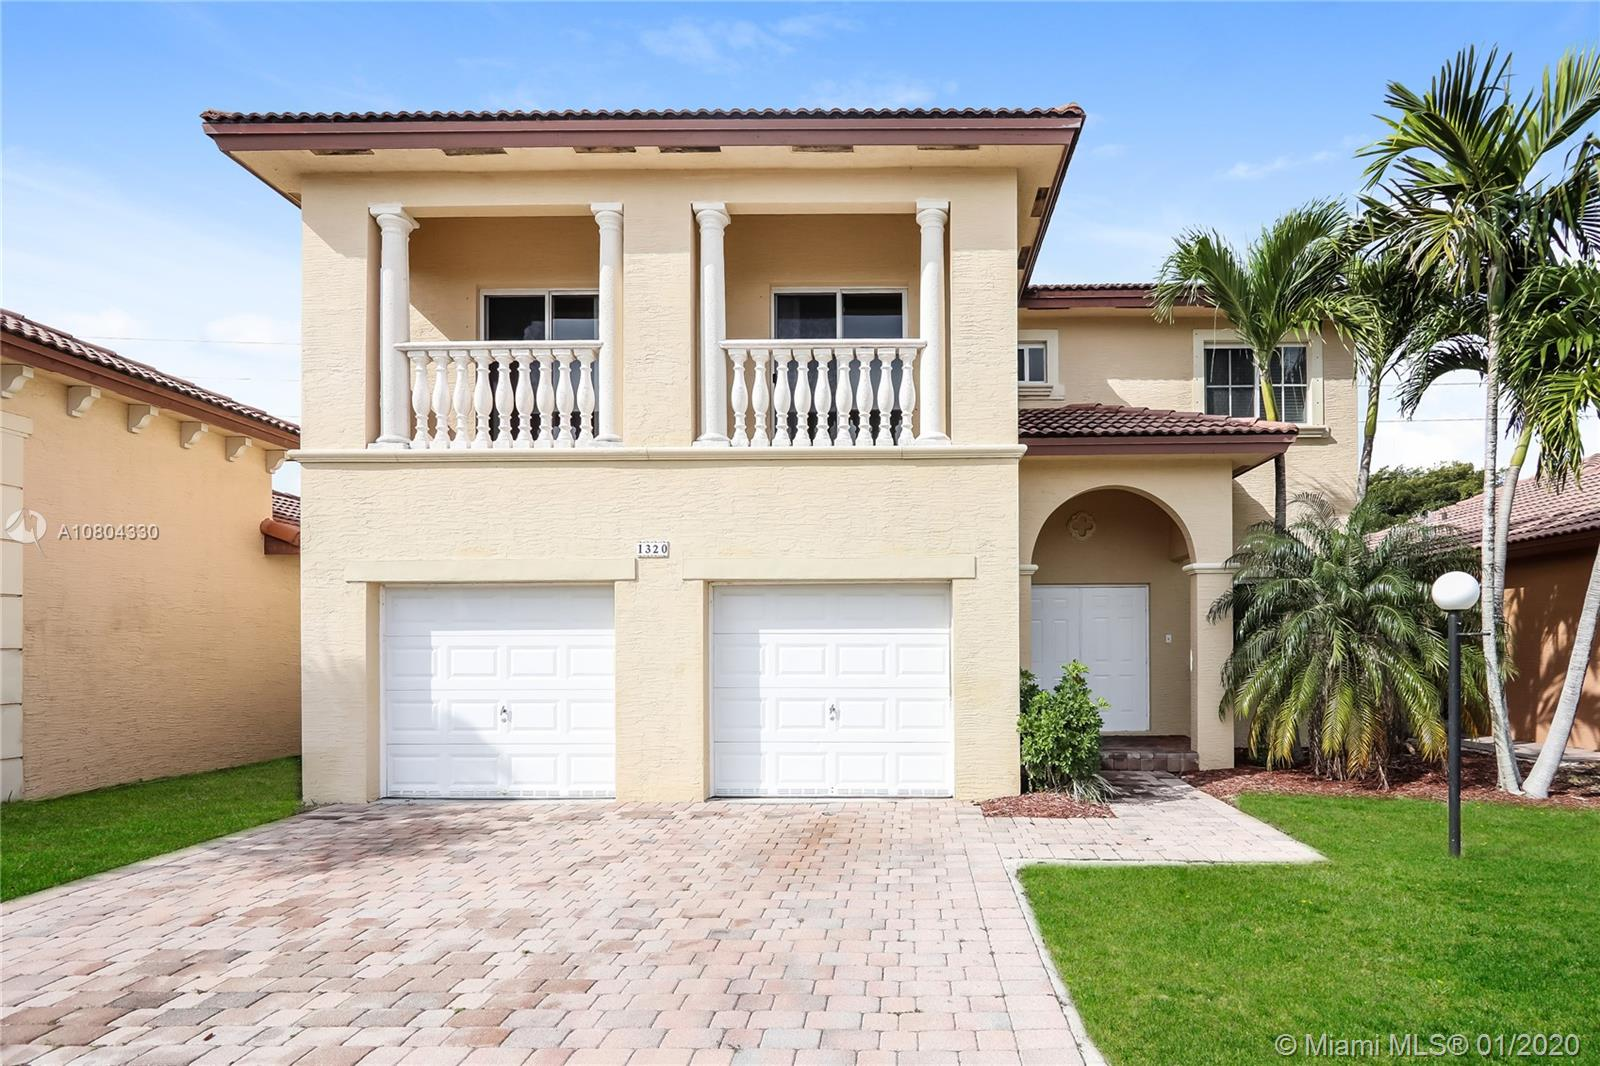 1320 NE 41st Pl, Homestead, FL 33033 - Homestead, FL real estate listing